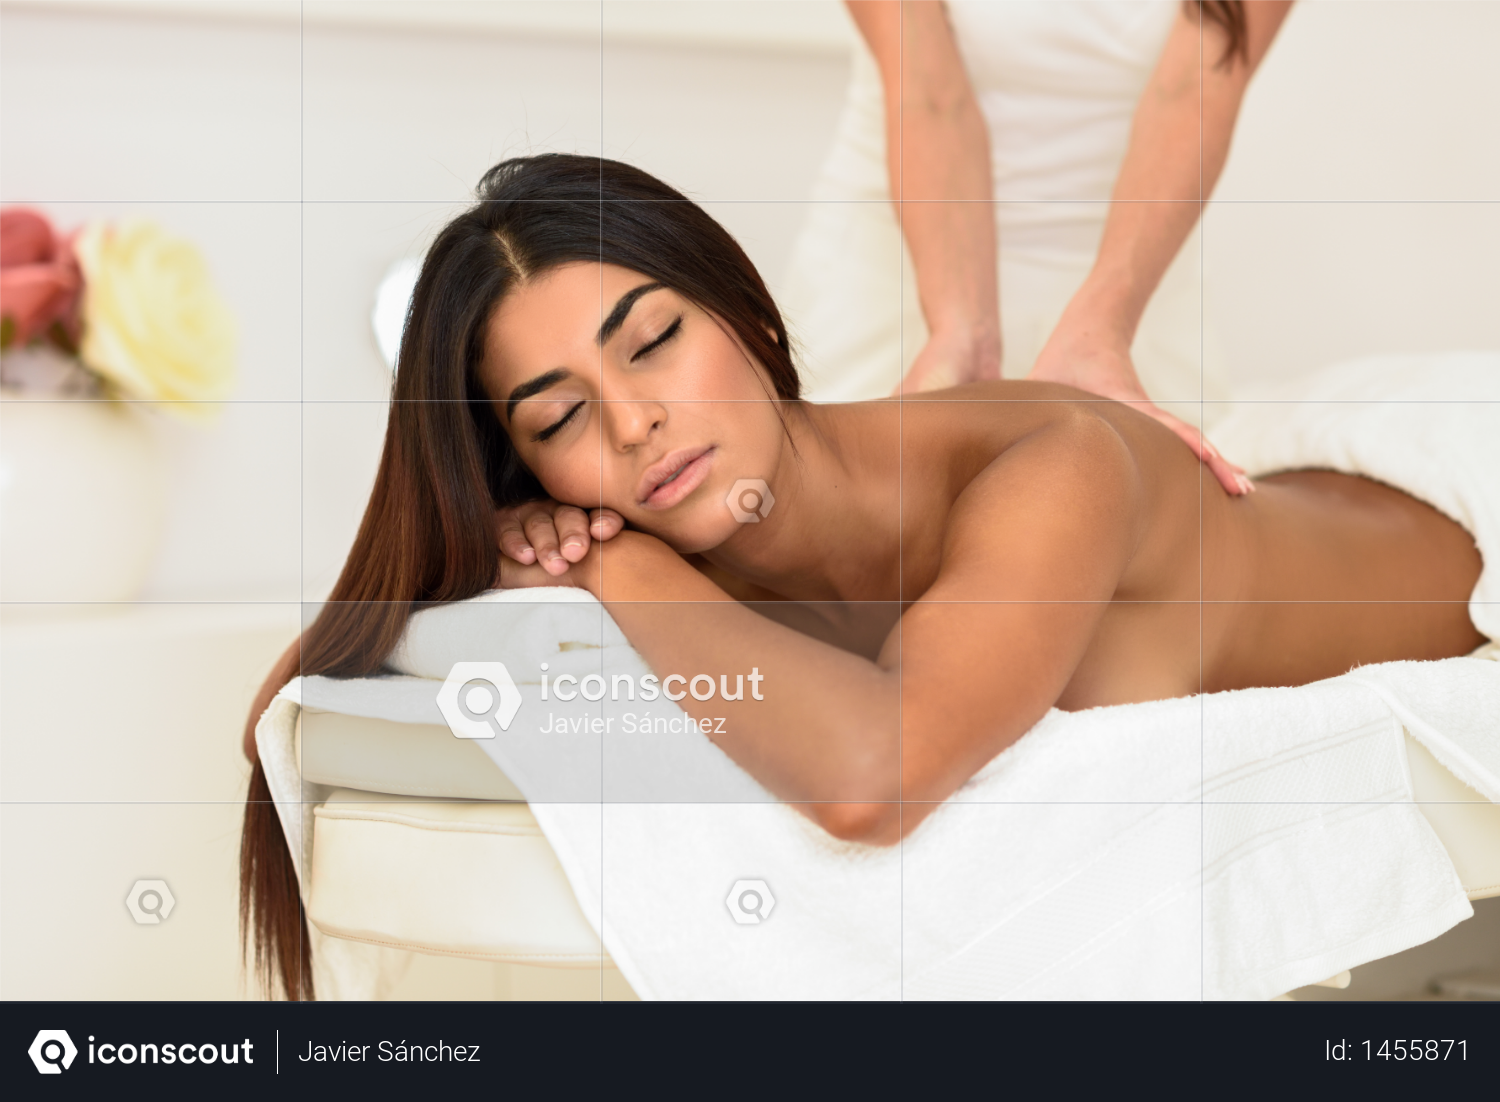 Arab woman receiving back massage in spa wellness center. Beauty and Aesthetic concepts. Photo